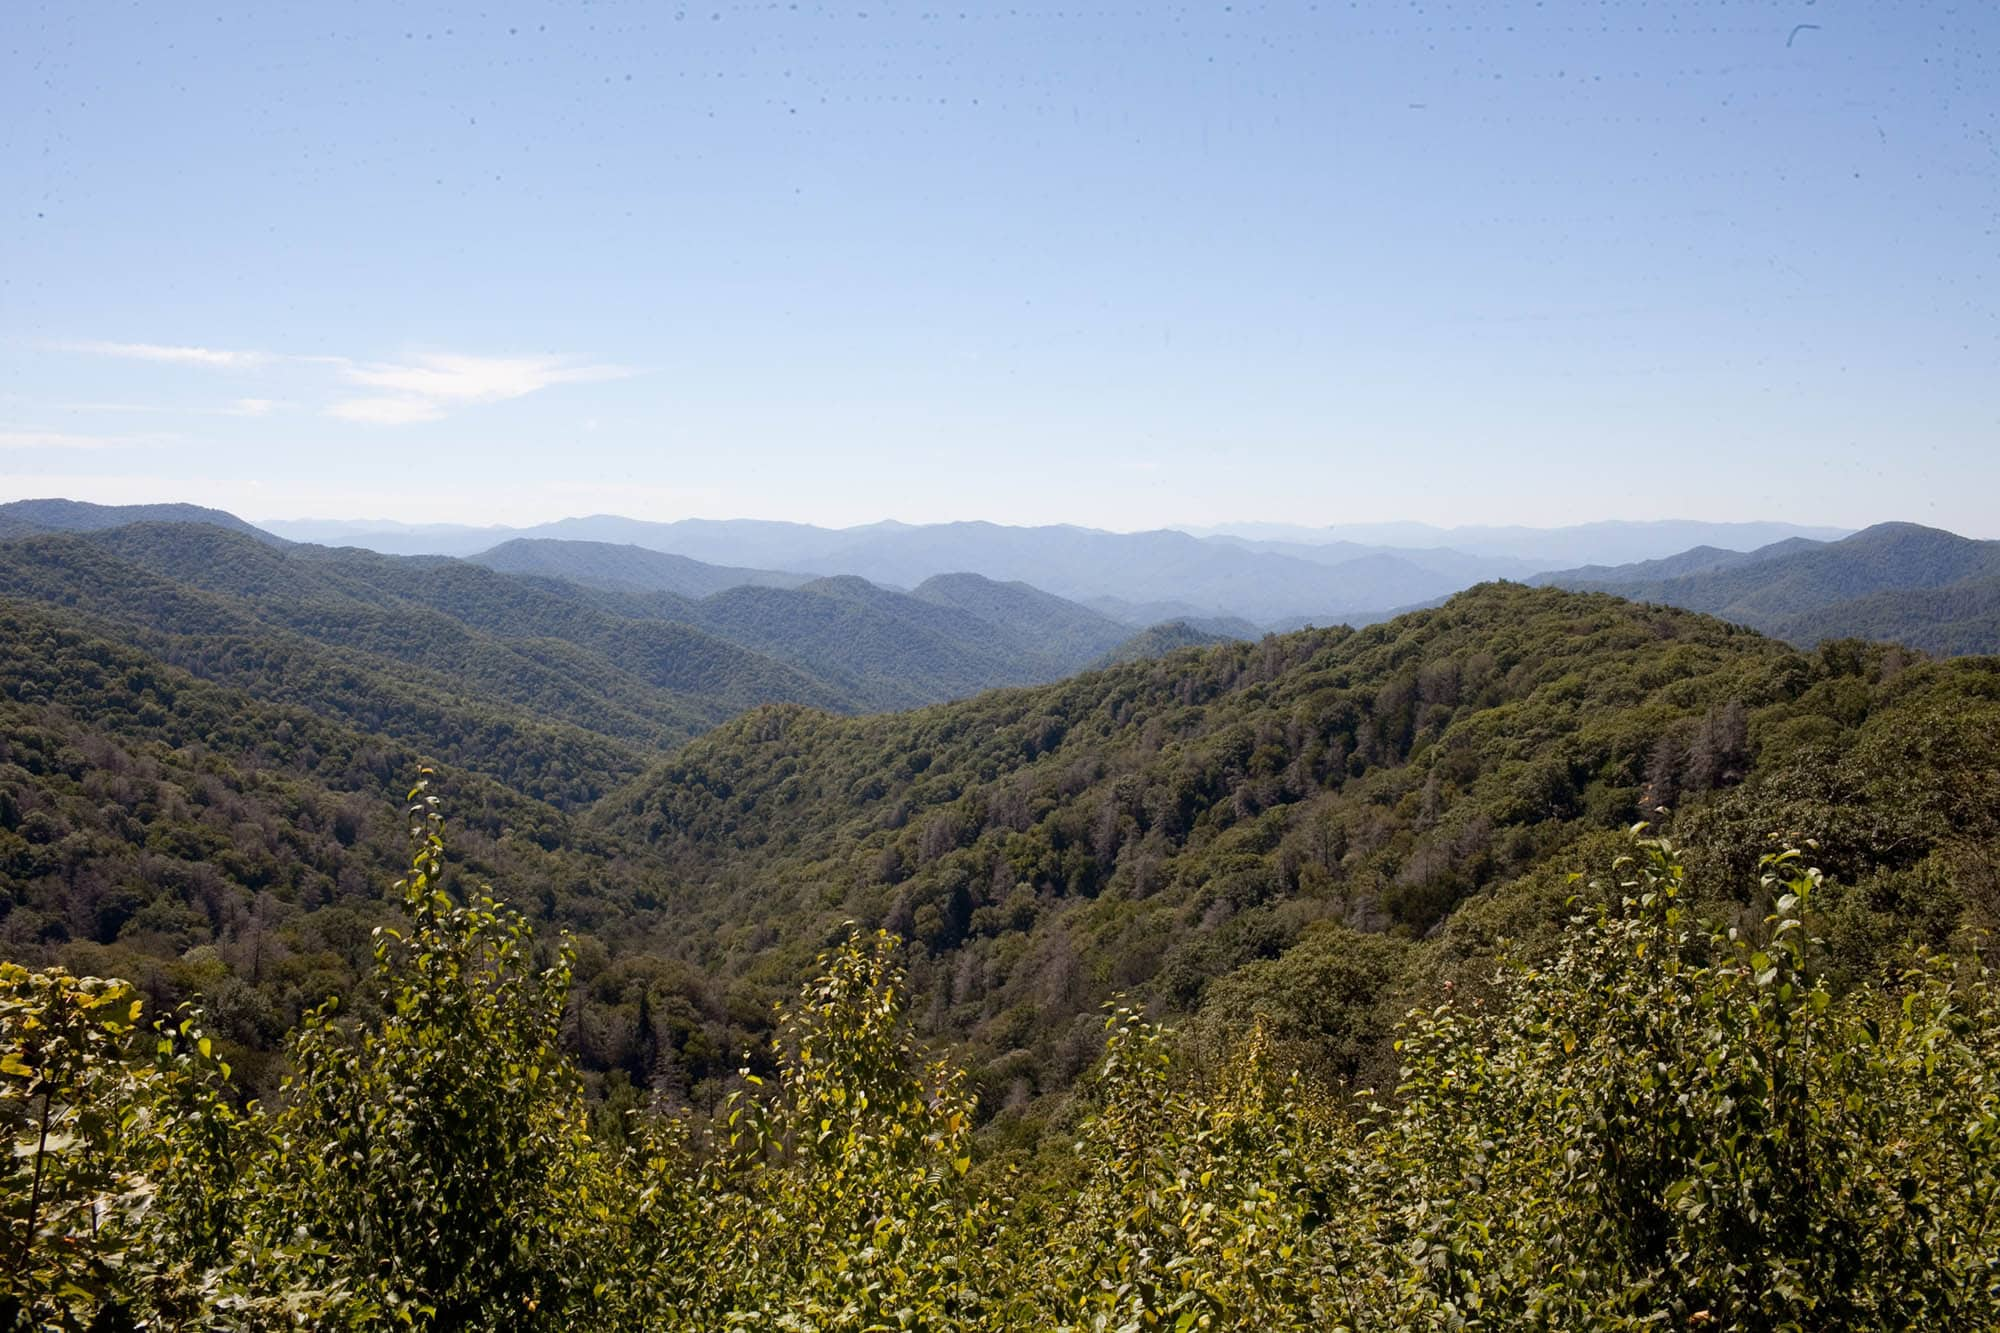 Virginia/North Carolina Road Trip - Driving through the Great Smoky Mountains